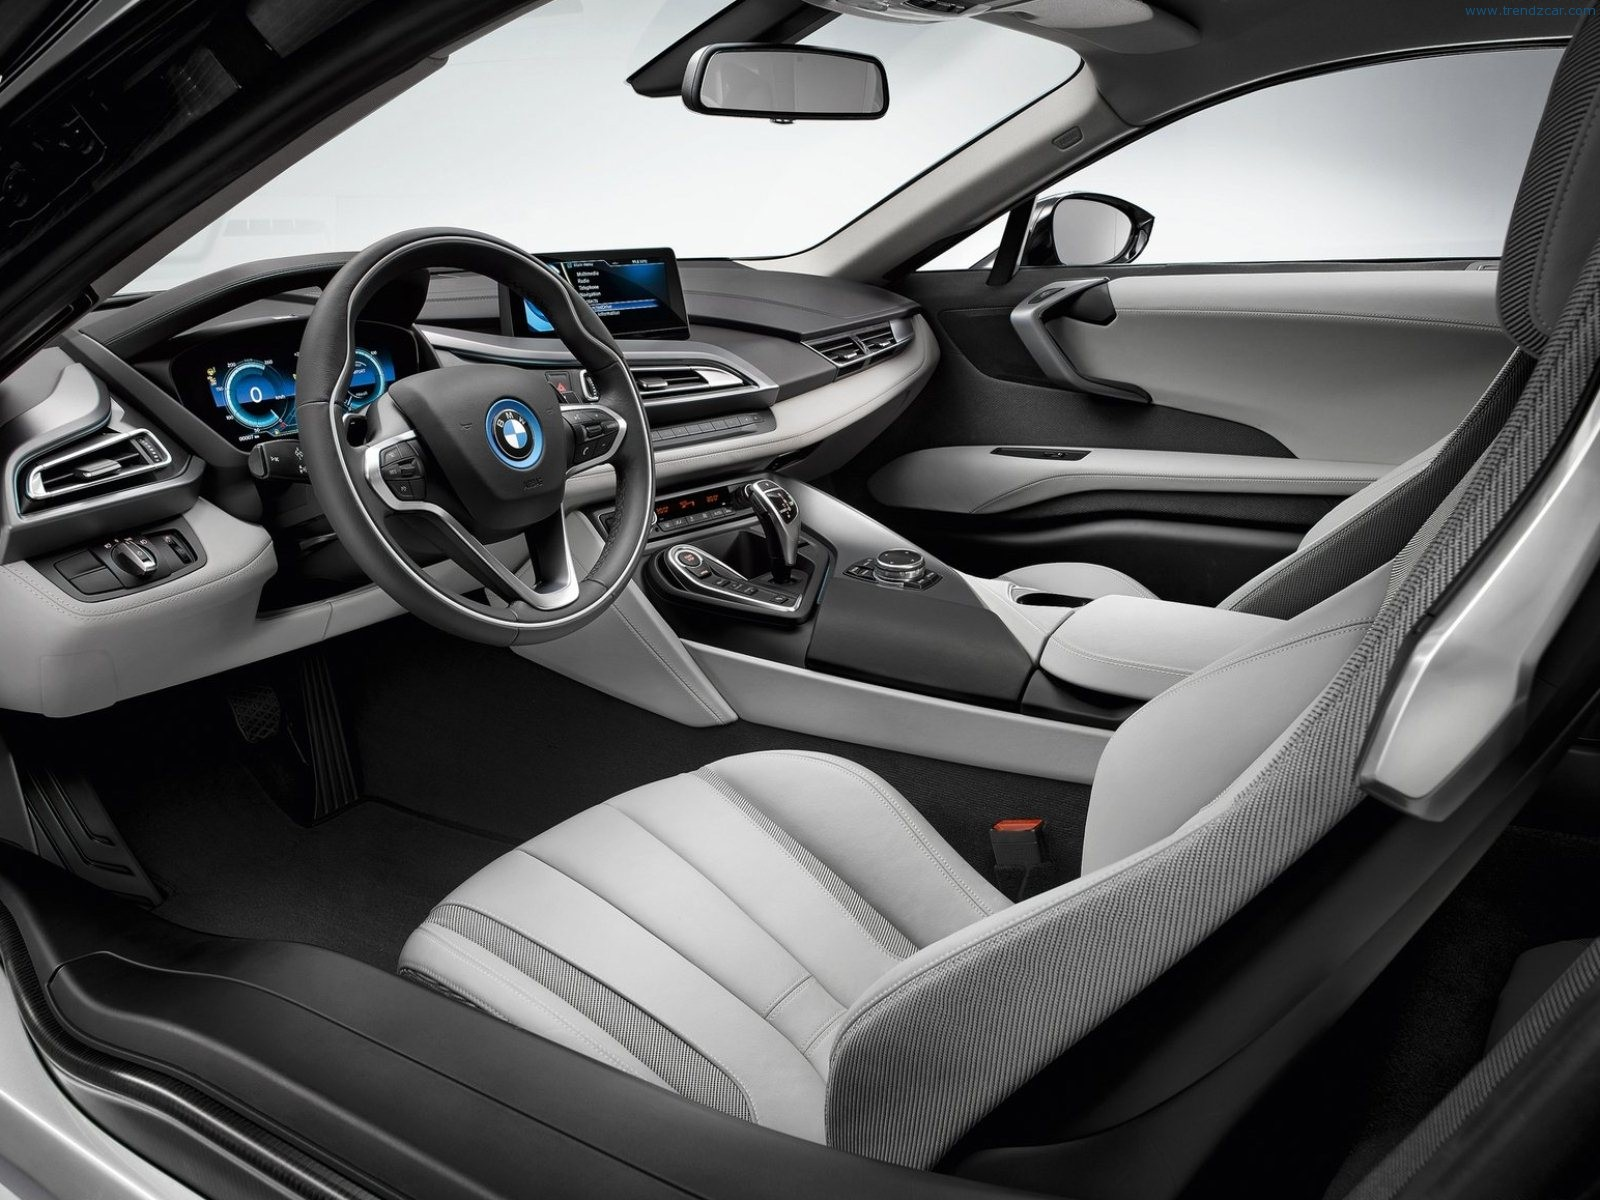 2015 BMW 7 Series Interior Amazing